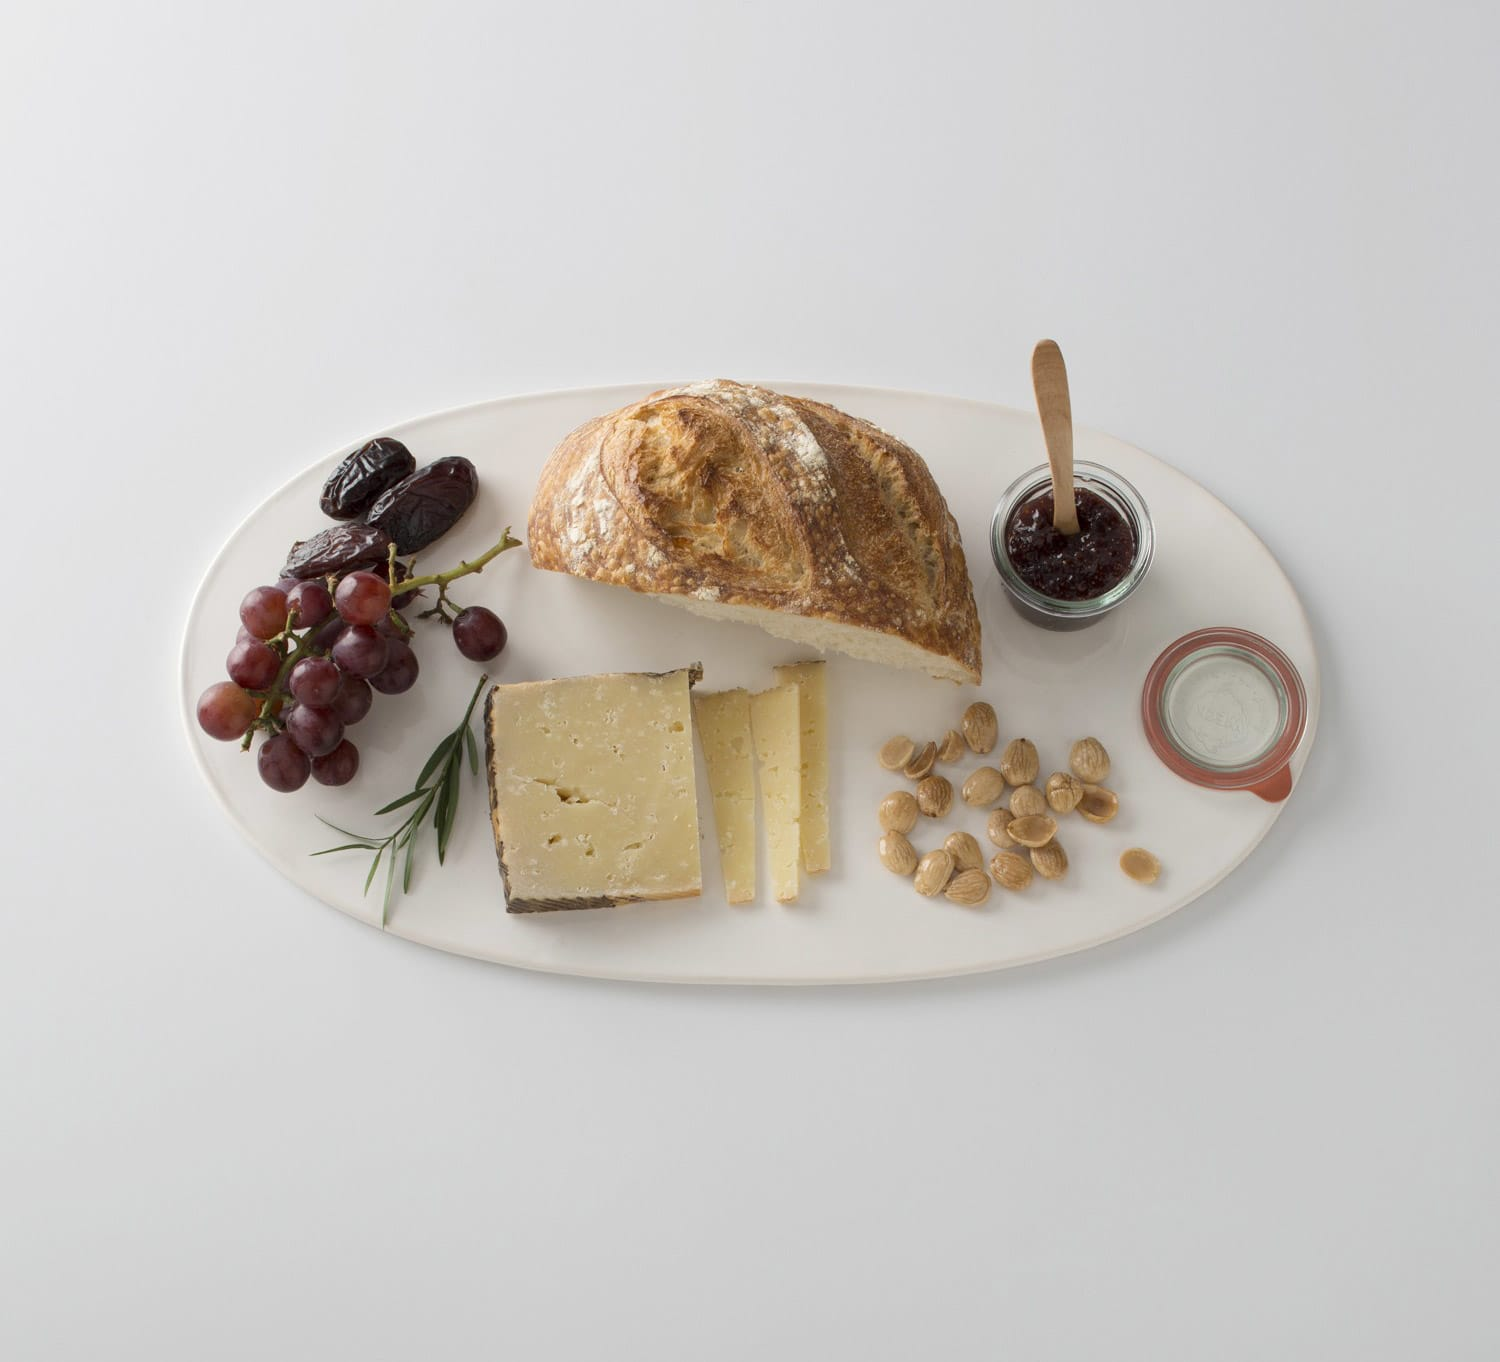 Oval Ceramic Serving Platter From Schoolhouse Electric